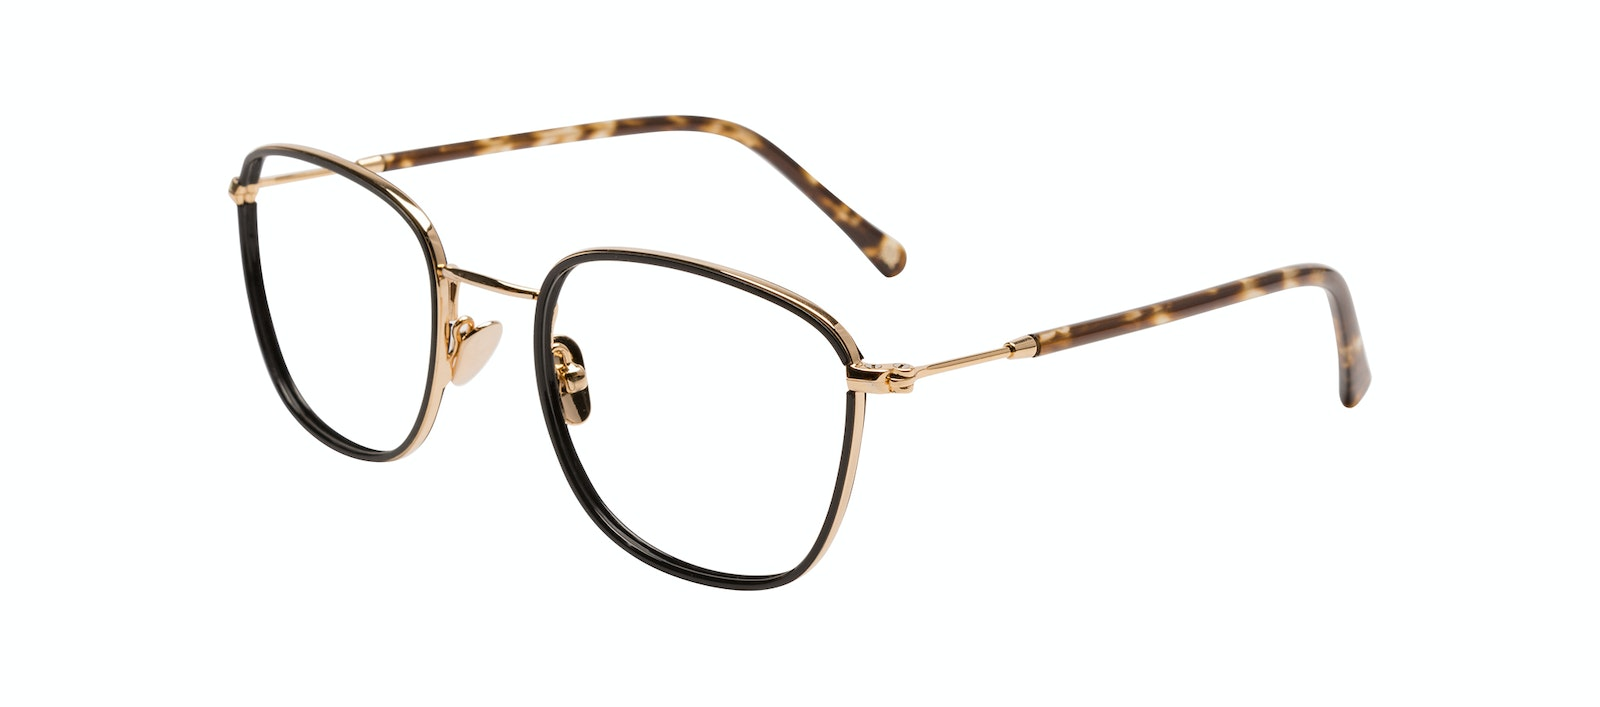 Affordable Fashion Glasses Rectangle Eyeglasses Women Lawrence Fusain Tilt